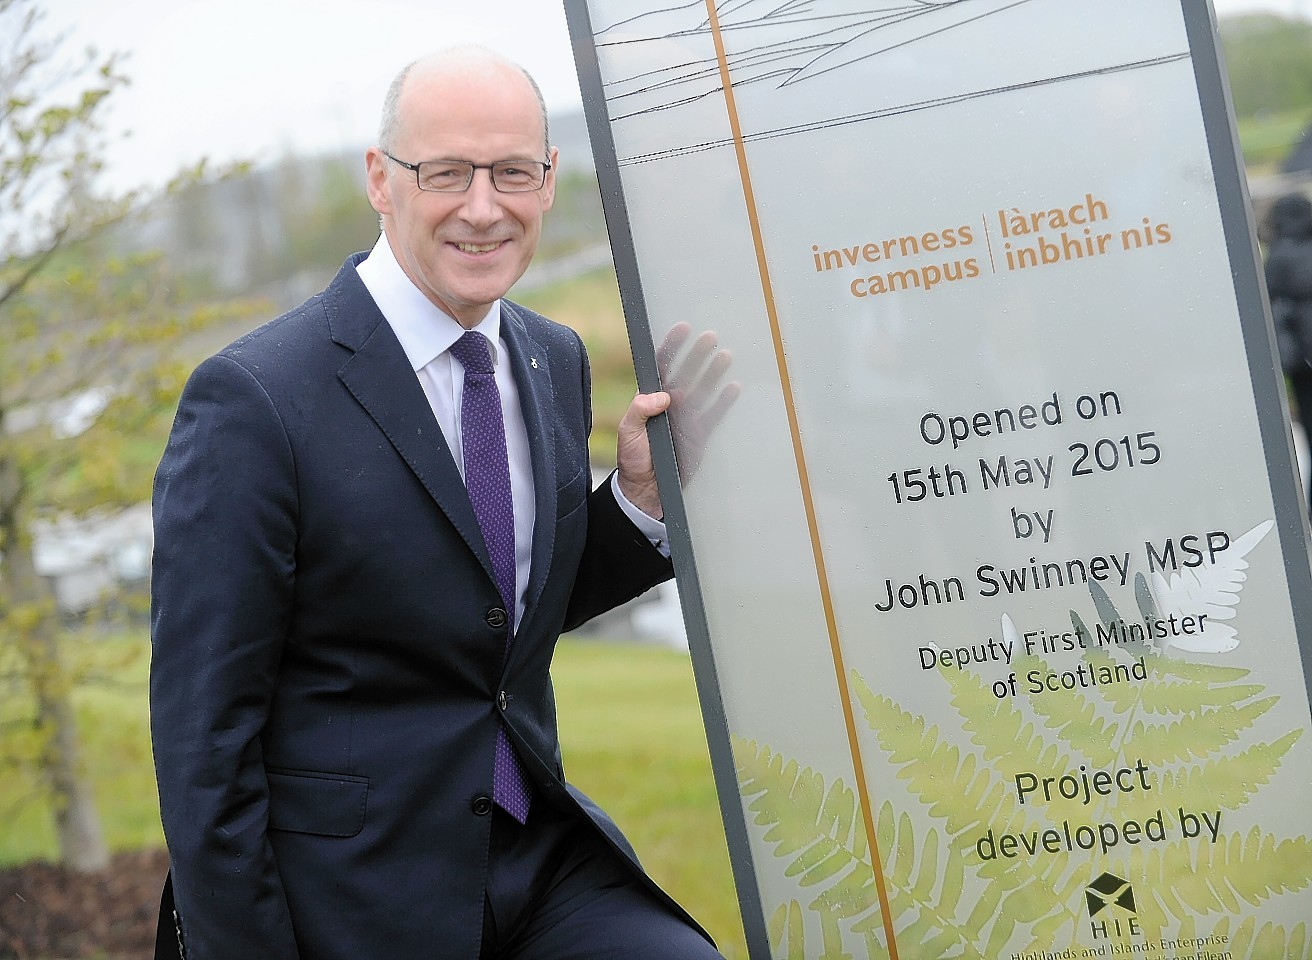 John Swinney, Deputy First Minister yesterday officially opened the new Inverness Campus.